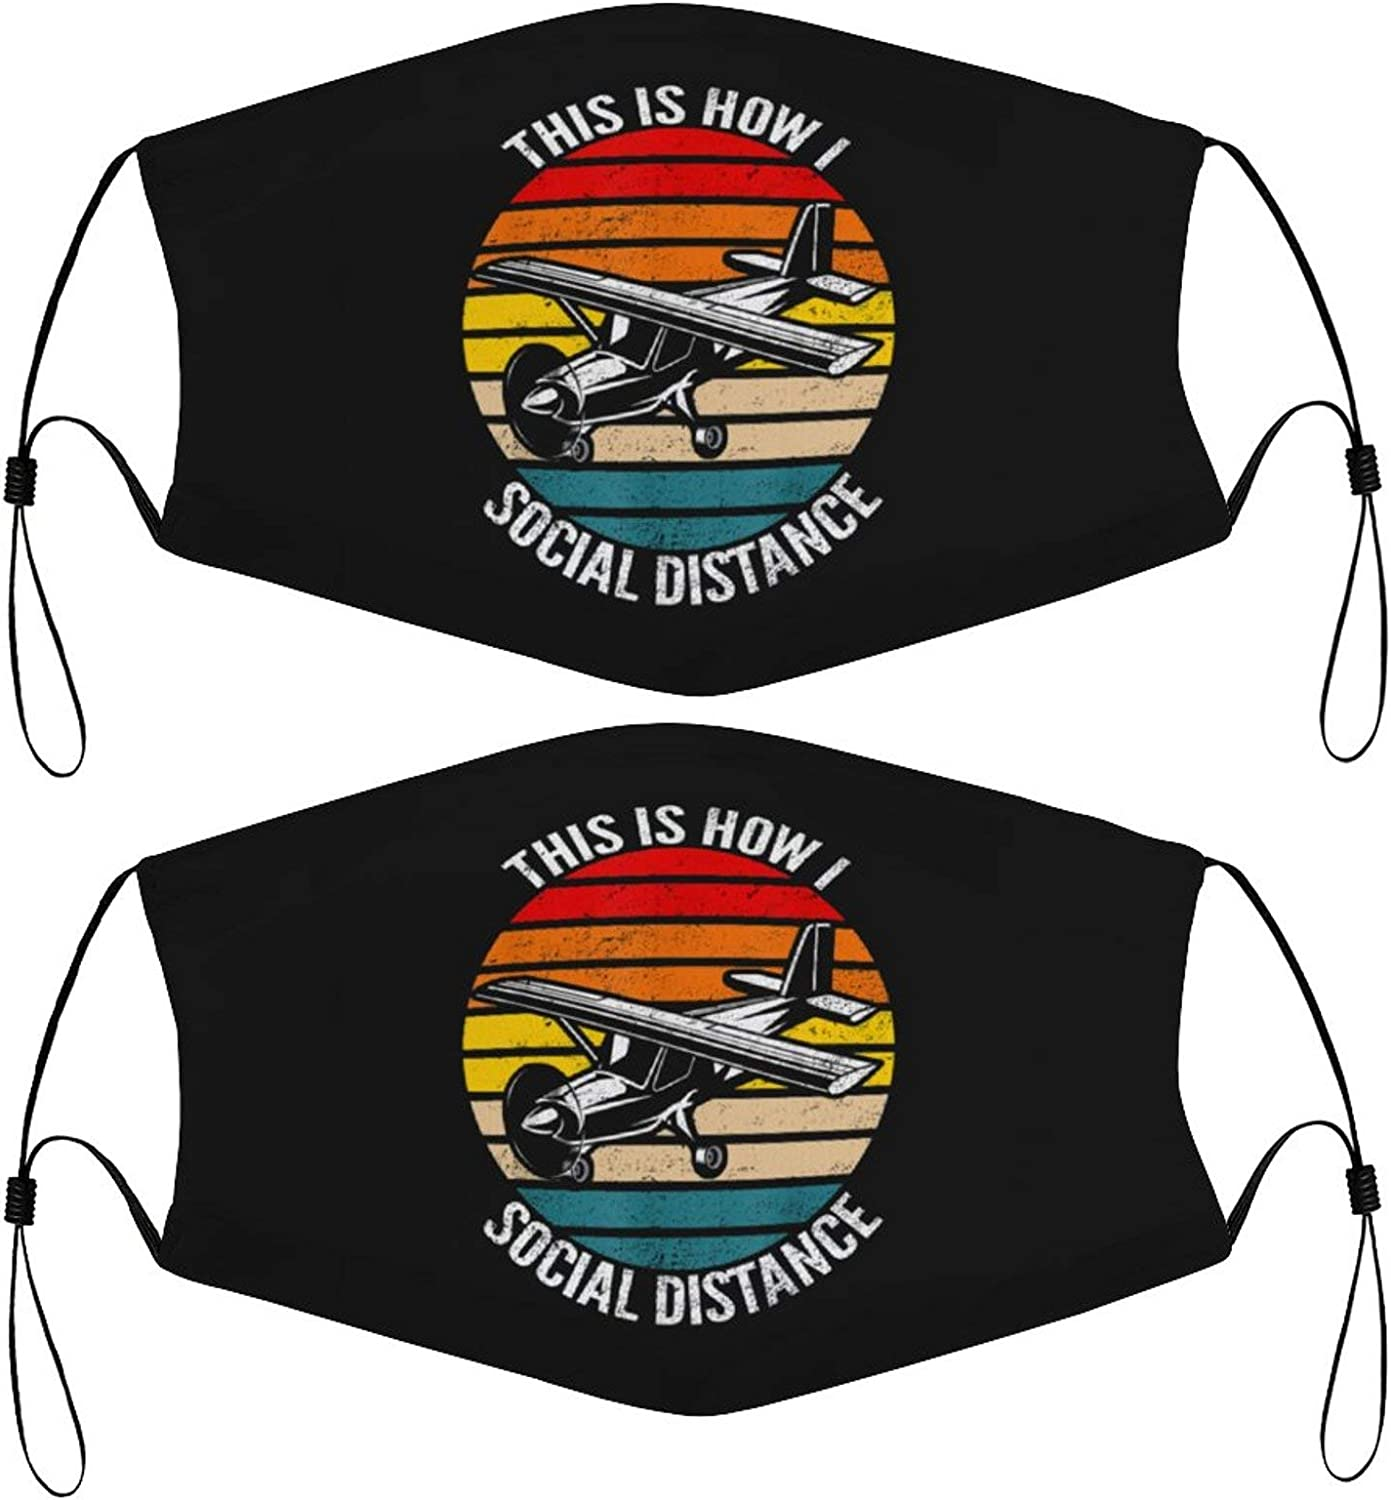 Social Distance Plane Retro Kids Face Masks Set of 2 with 4 Filters Washable Reusable Breathable Black Cloth Bandanas Scarf for Unisex Boys Girls